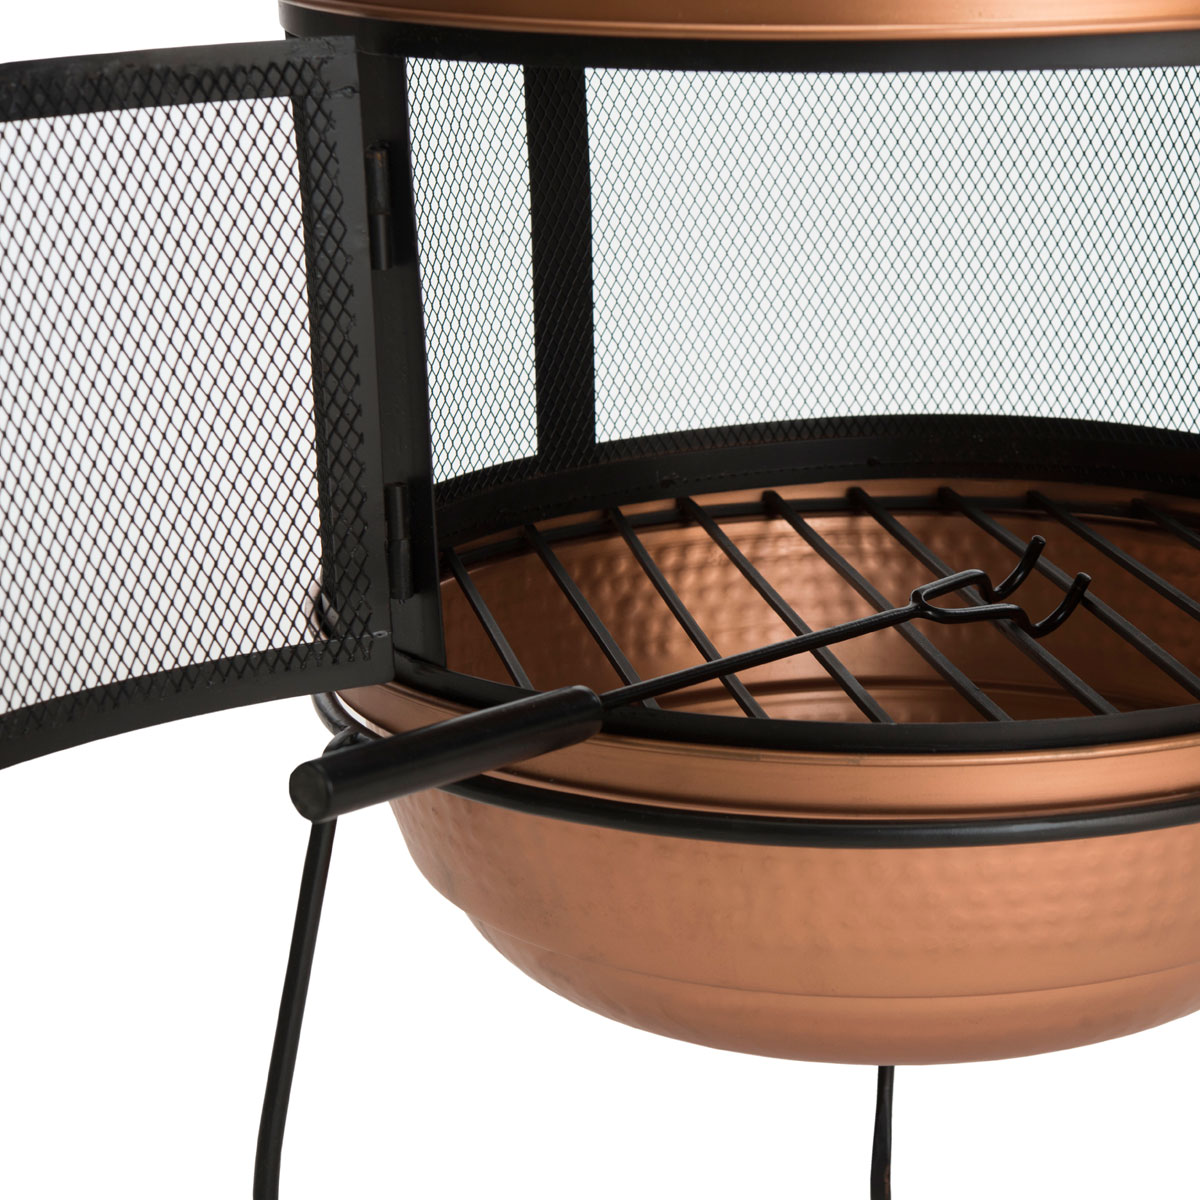 Pit1000a Fire Pits Outdoor Home Furnishings Furniture